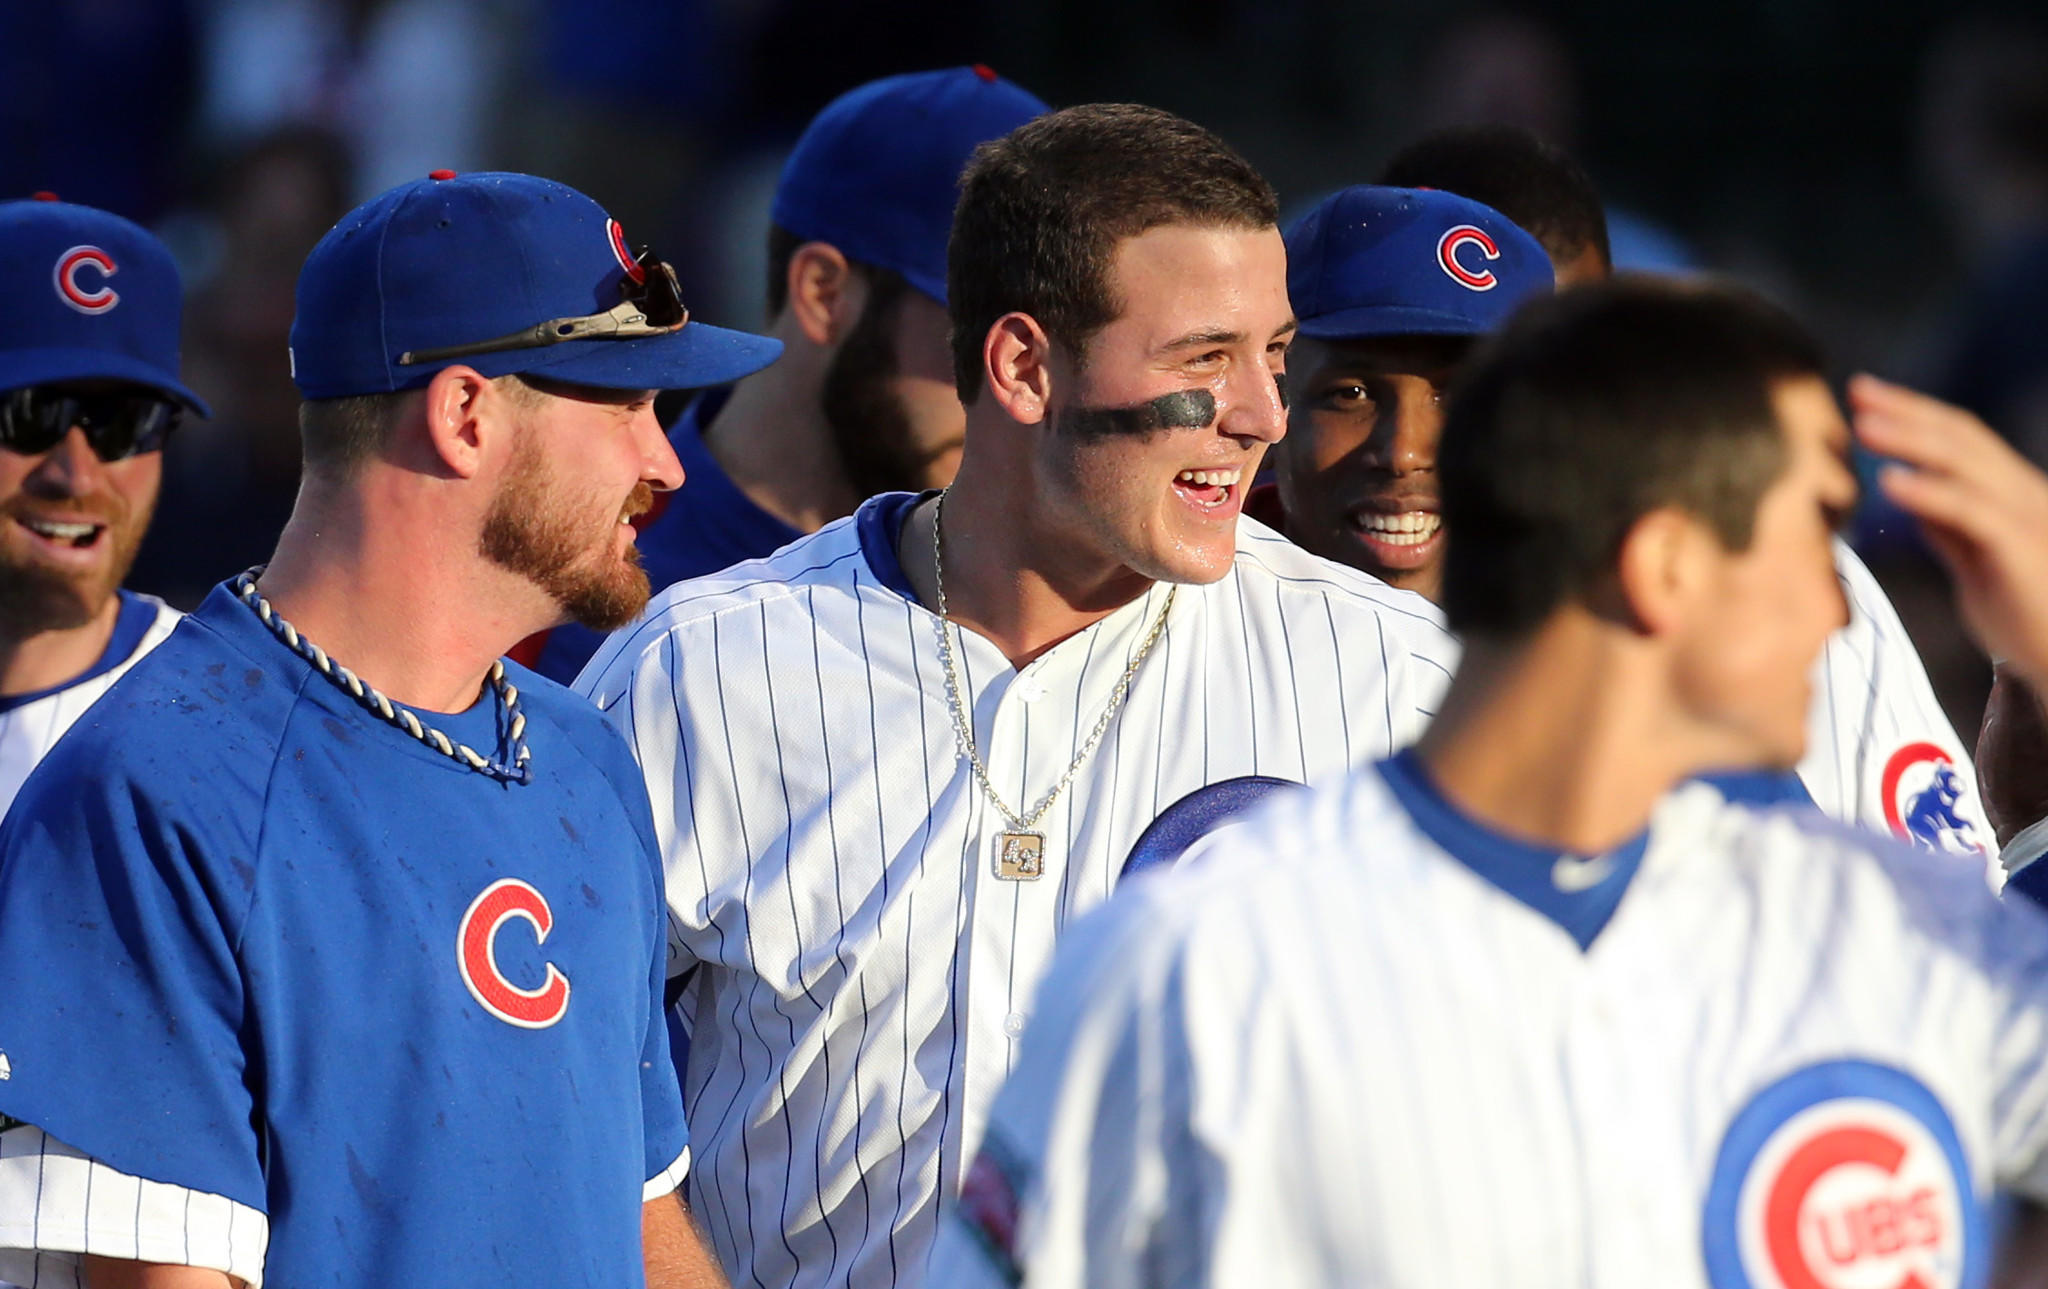 Cubs first baseman Anthony Rizzo celebrates his walk-off home run Friday with teammates.